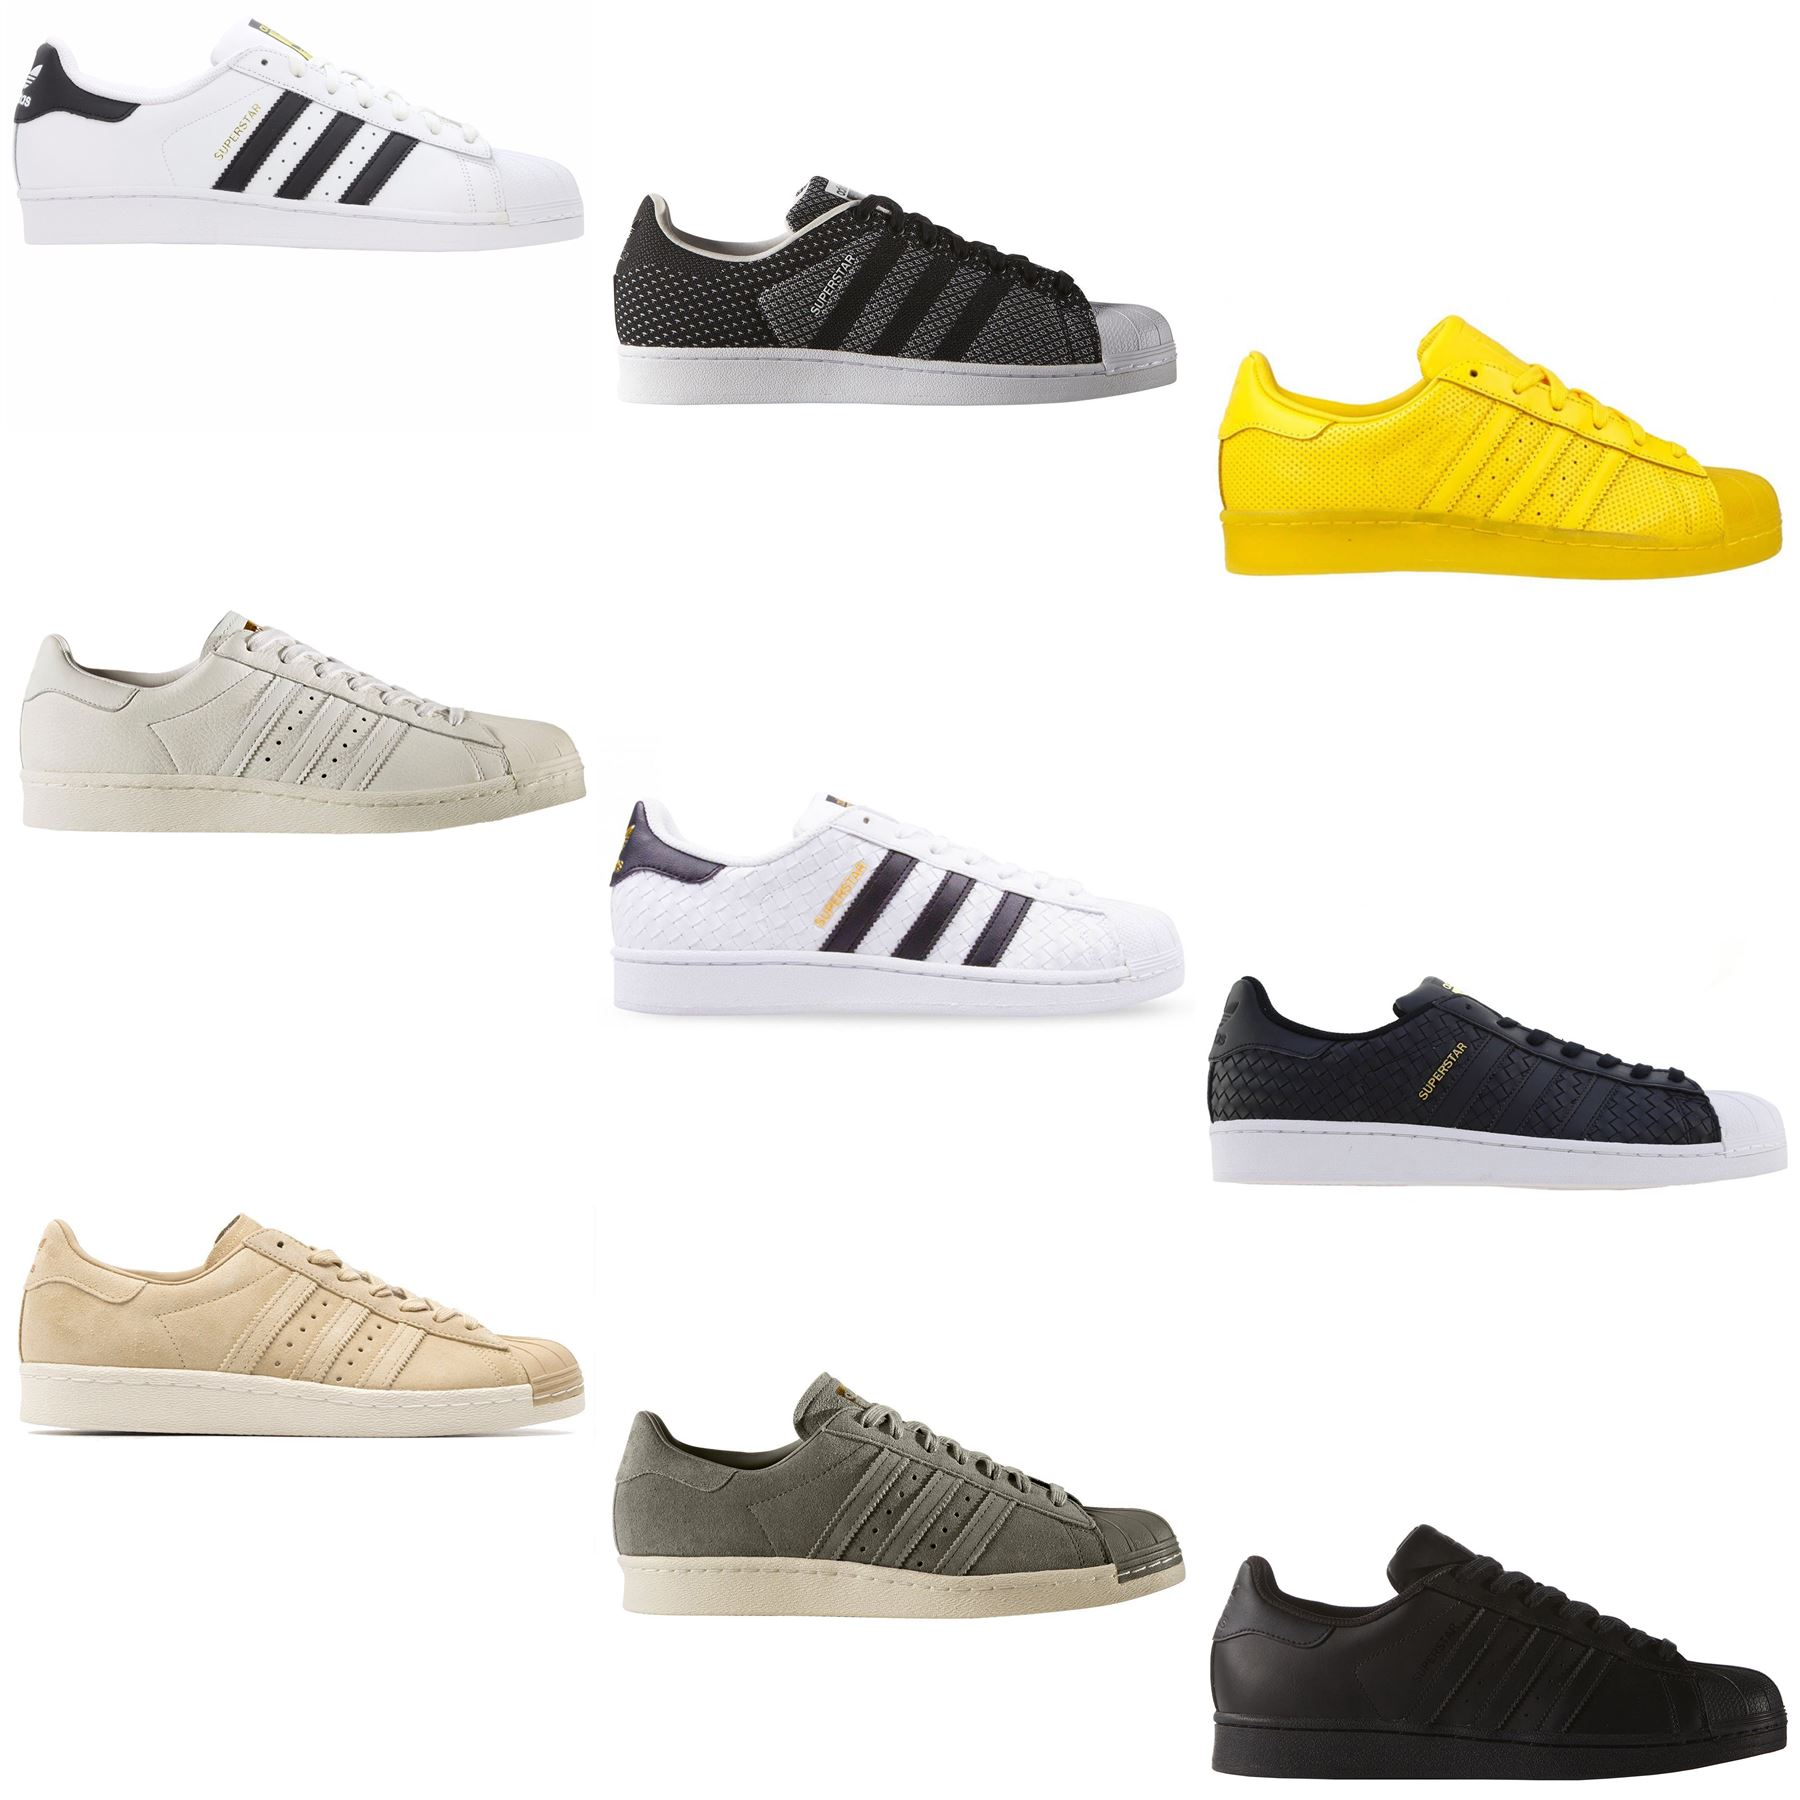 Mode Suede Adidas Originals Superstar 80er Jahre Herren